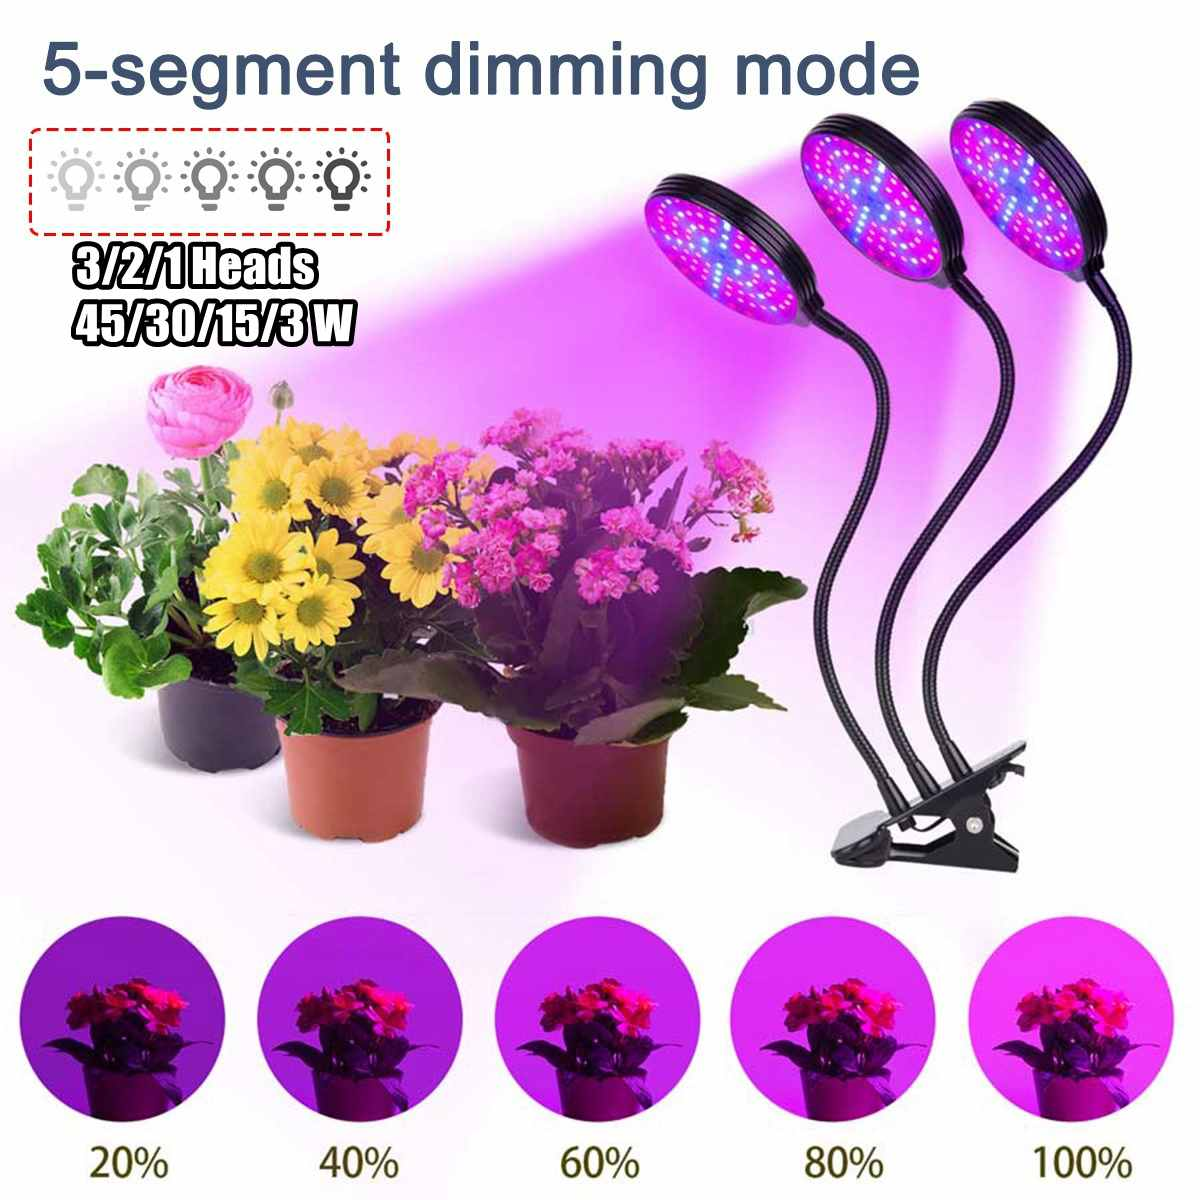 1/2/3 Heads Spectrum LED Grow Light UV Plant Lamp Fito Lamp For Indoor Seedlings Flower Grow Tent Box Hydroponic Led Phyto Lamp